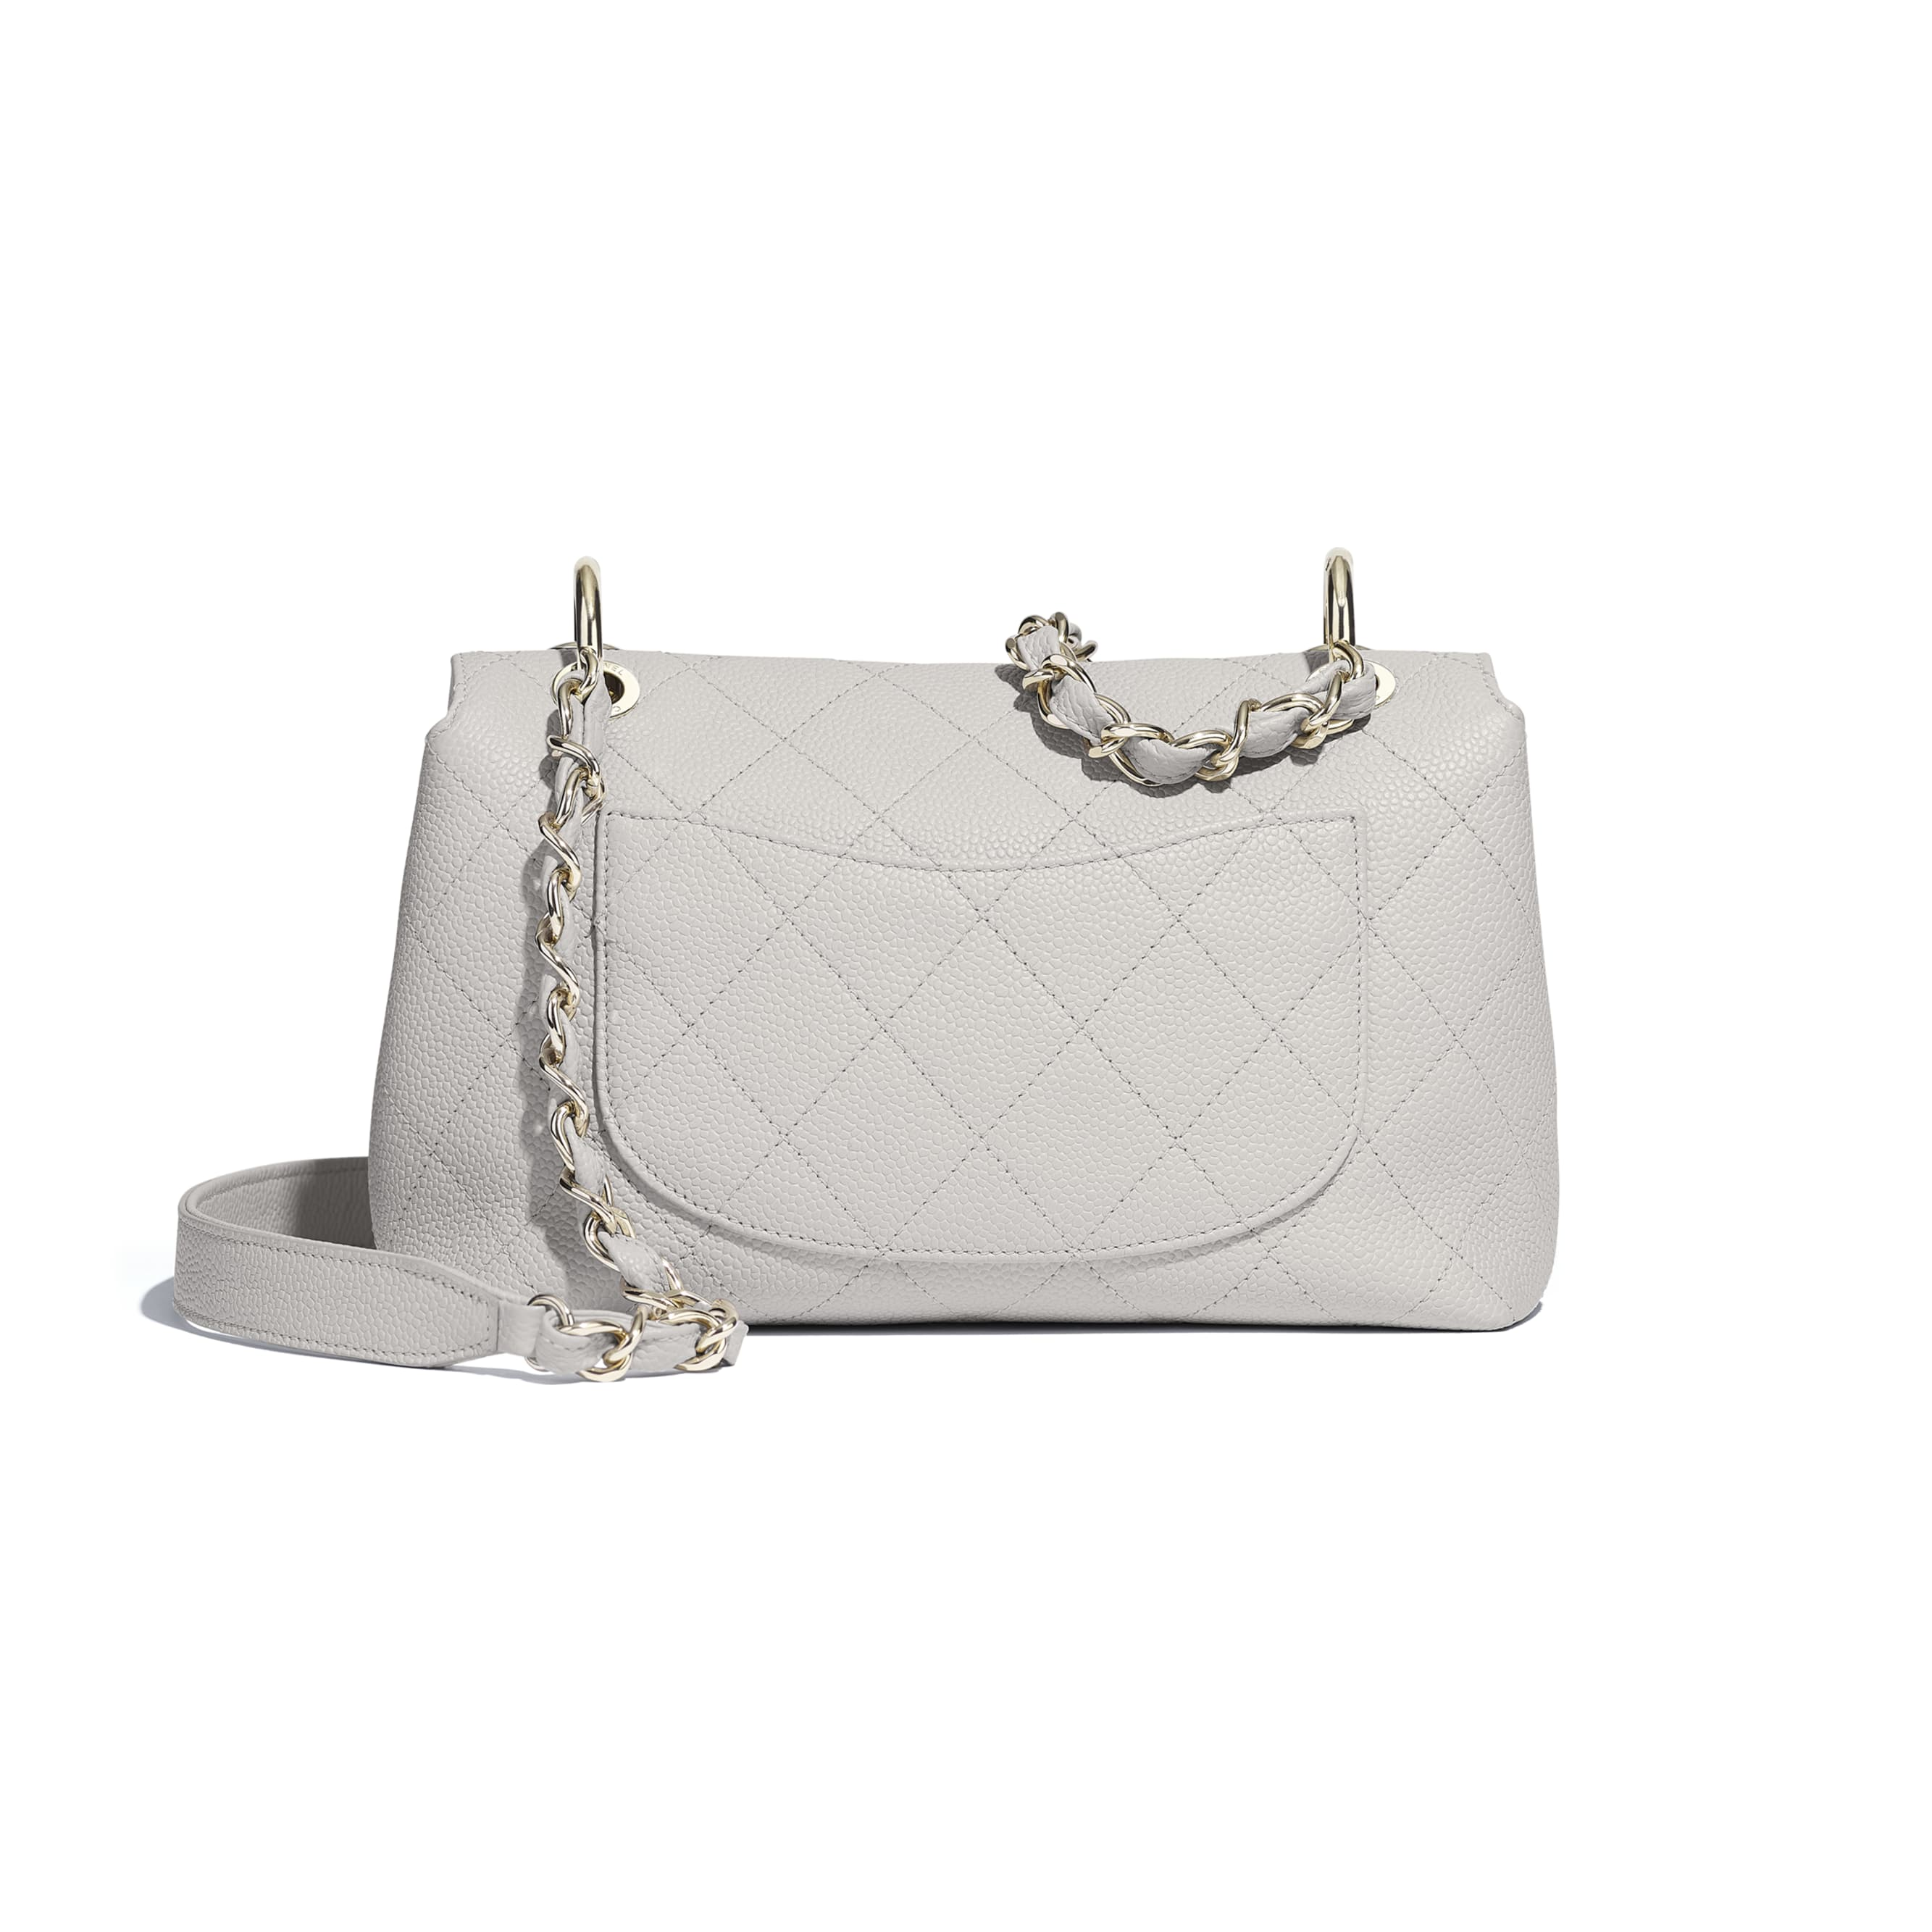 Small Flap Bag - Grey - Grained Calfskin & Gold-Tone Metal - CHANEL - Alternative view - see standard sized version